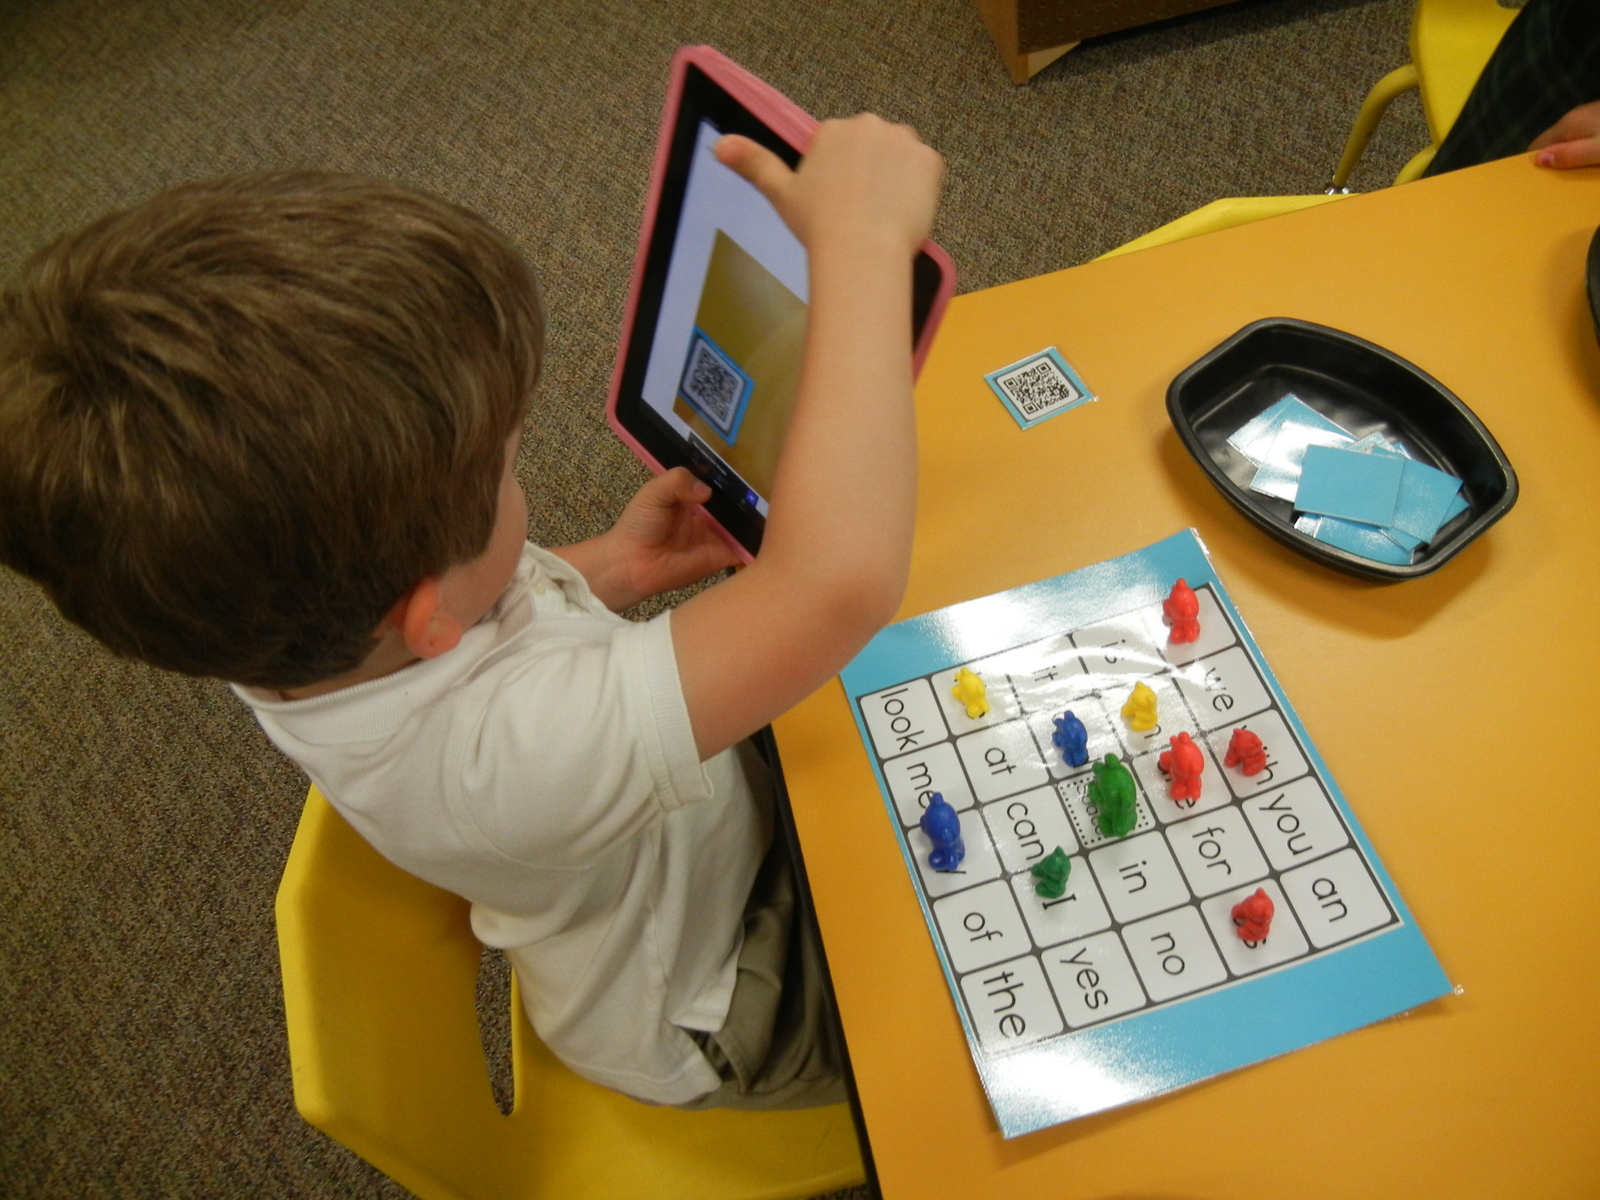 Audio QR Codes: Sight Word Bingo - Technology In Early Childhood